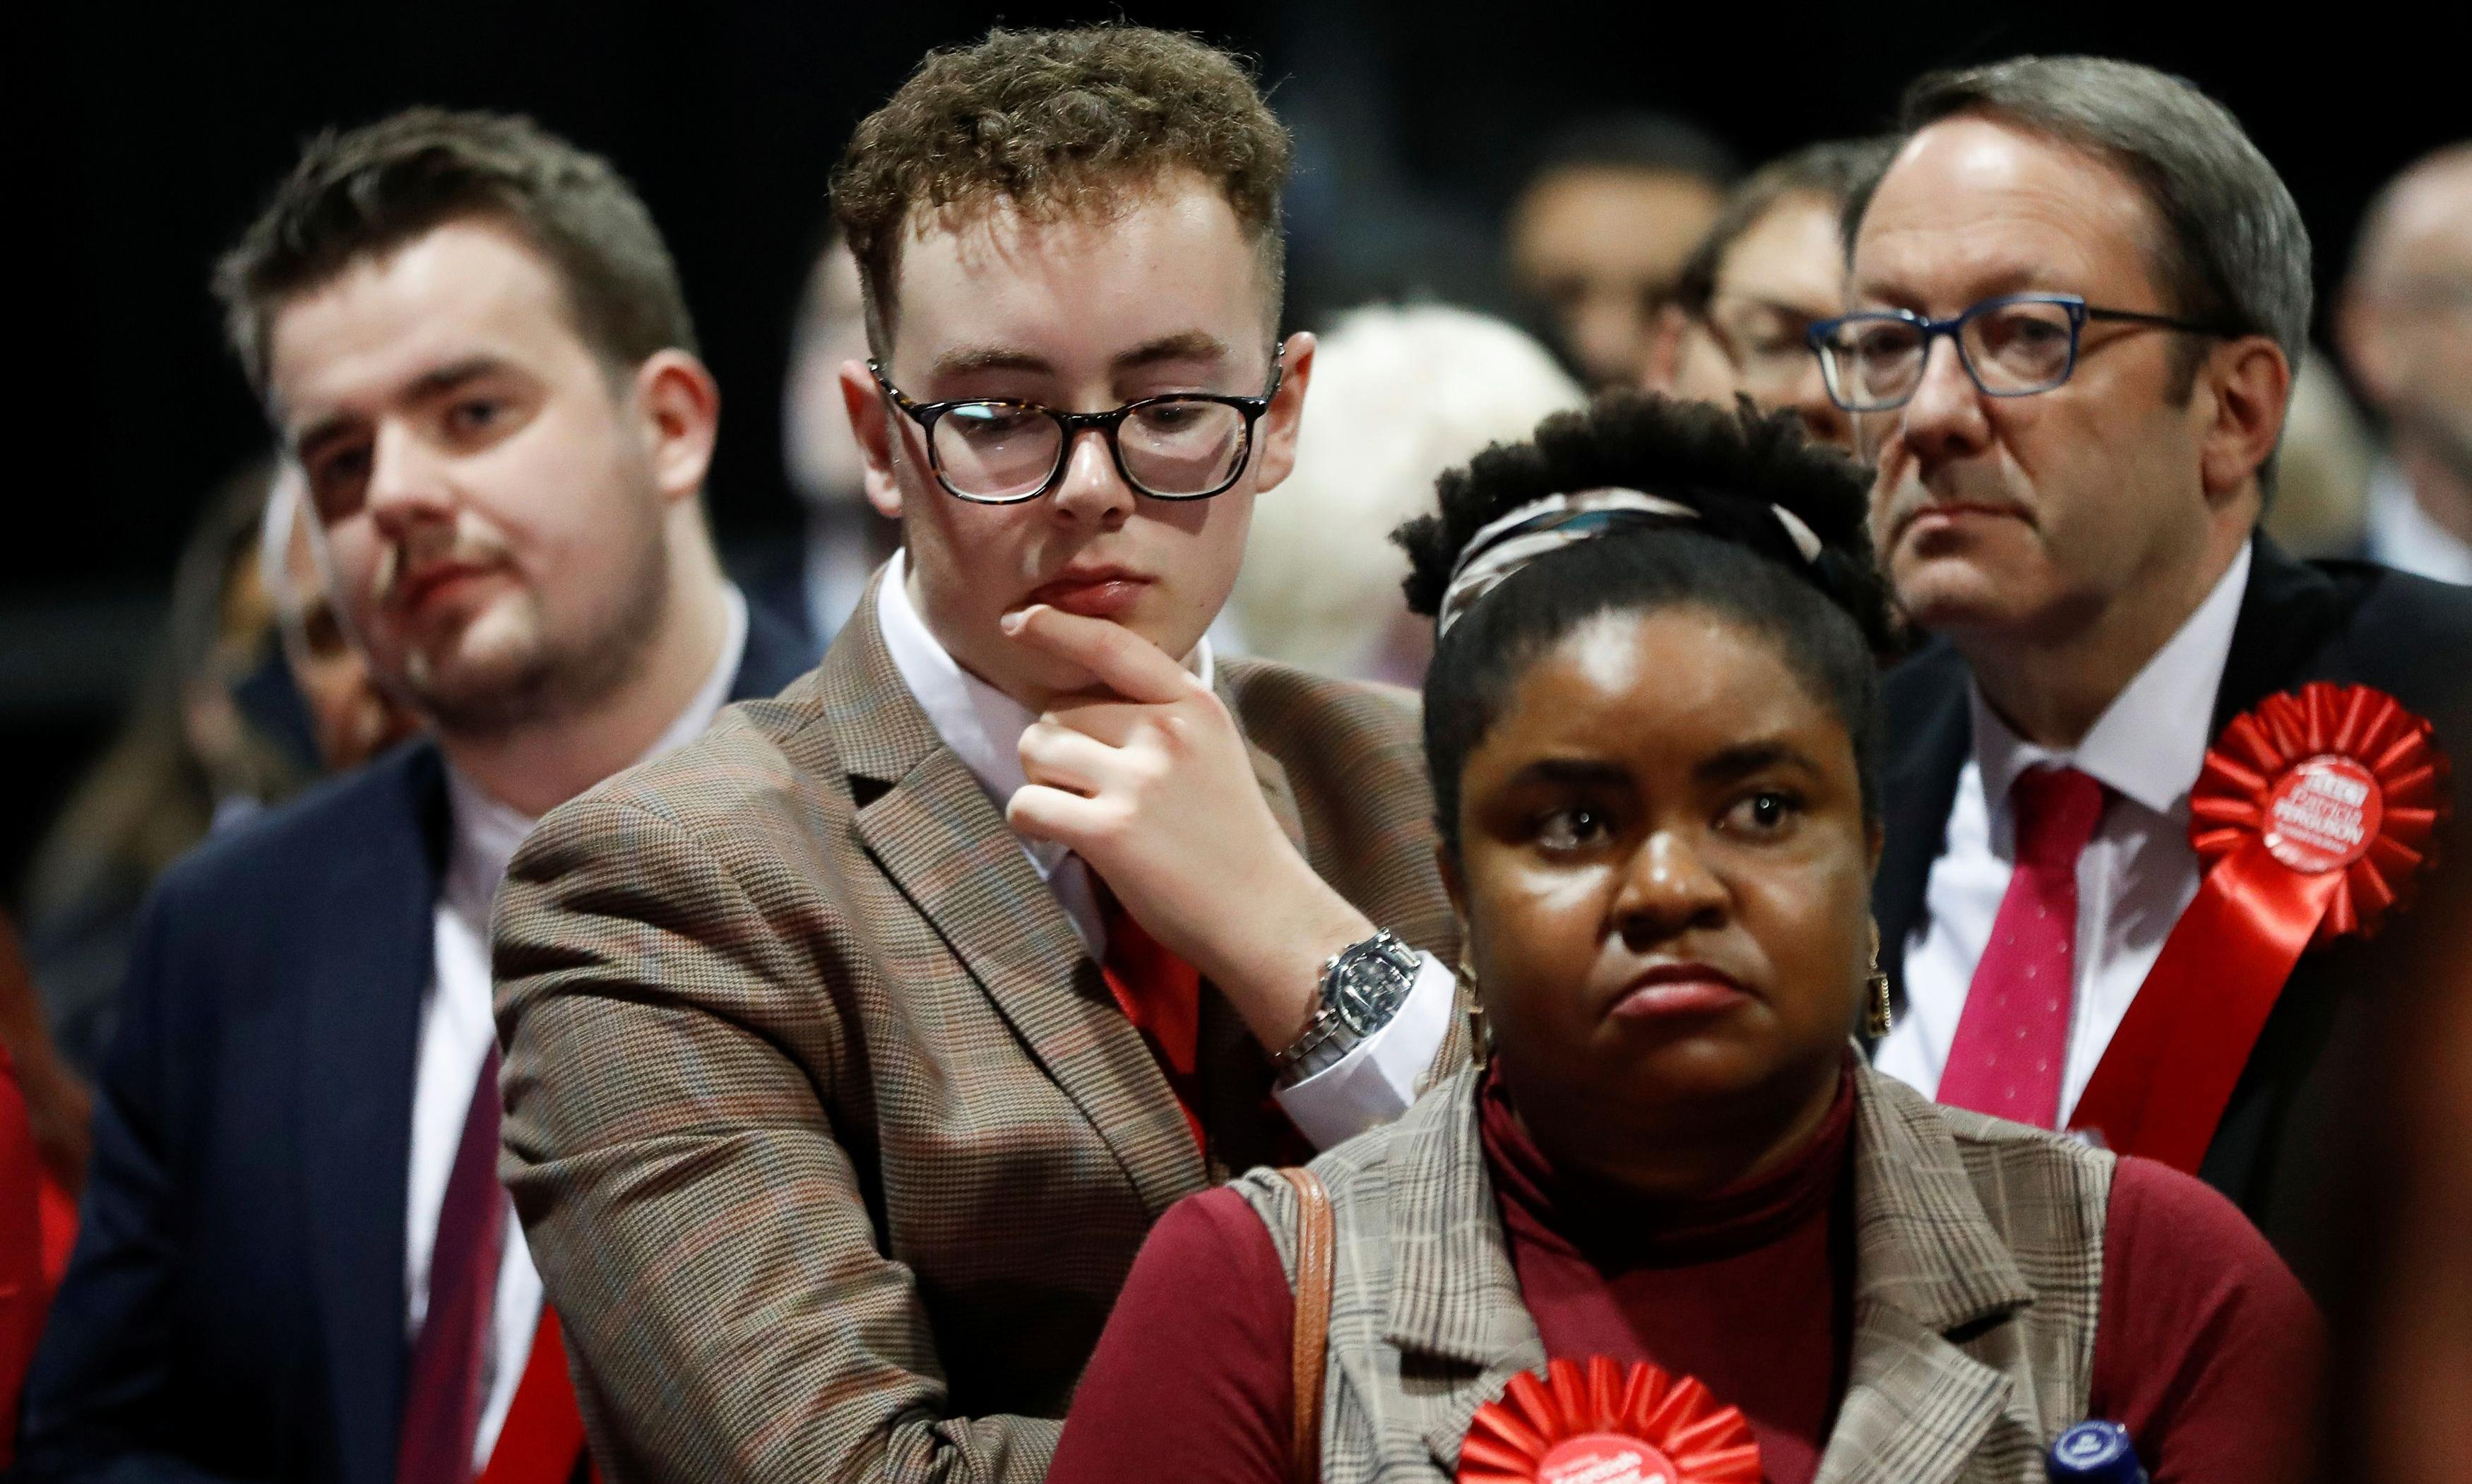 This defeat leaves Labour support unrecognisable from 35 years ago